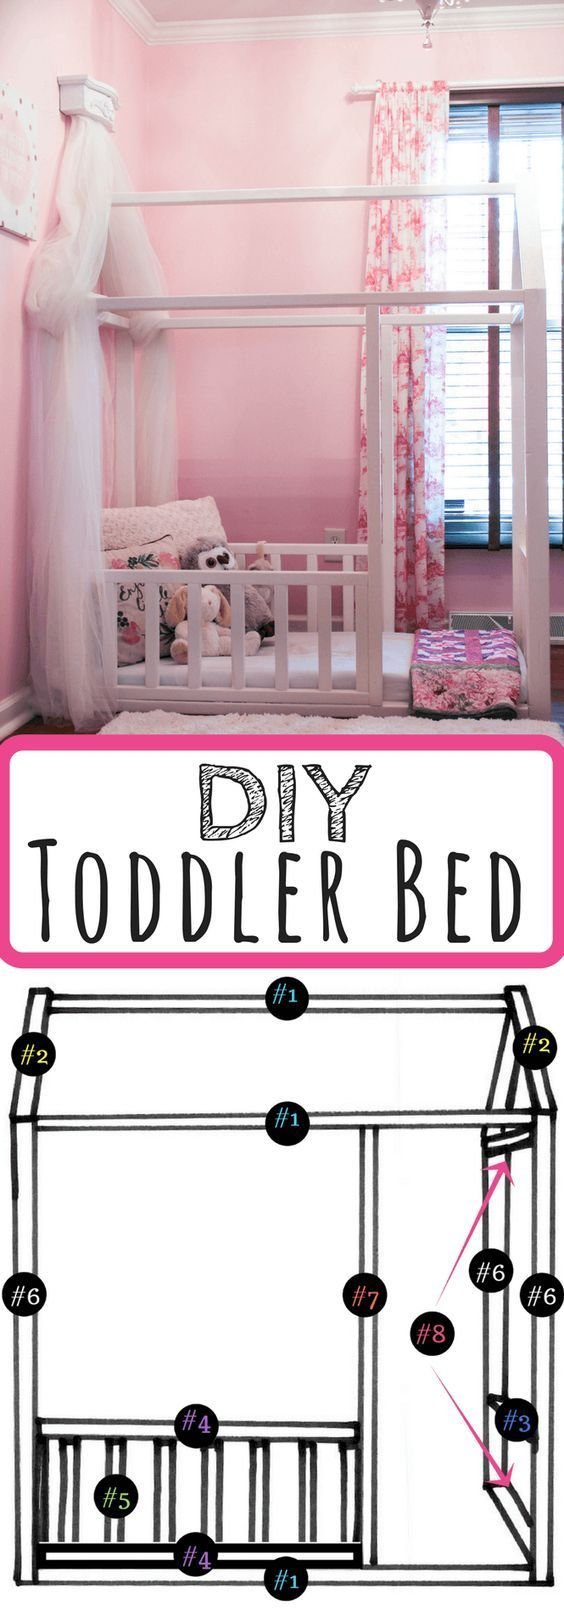 The 25 Best Diy Toddler Bed Ideas On Pinterest